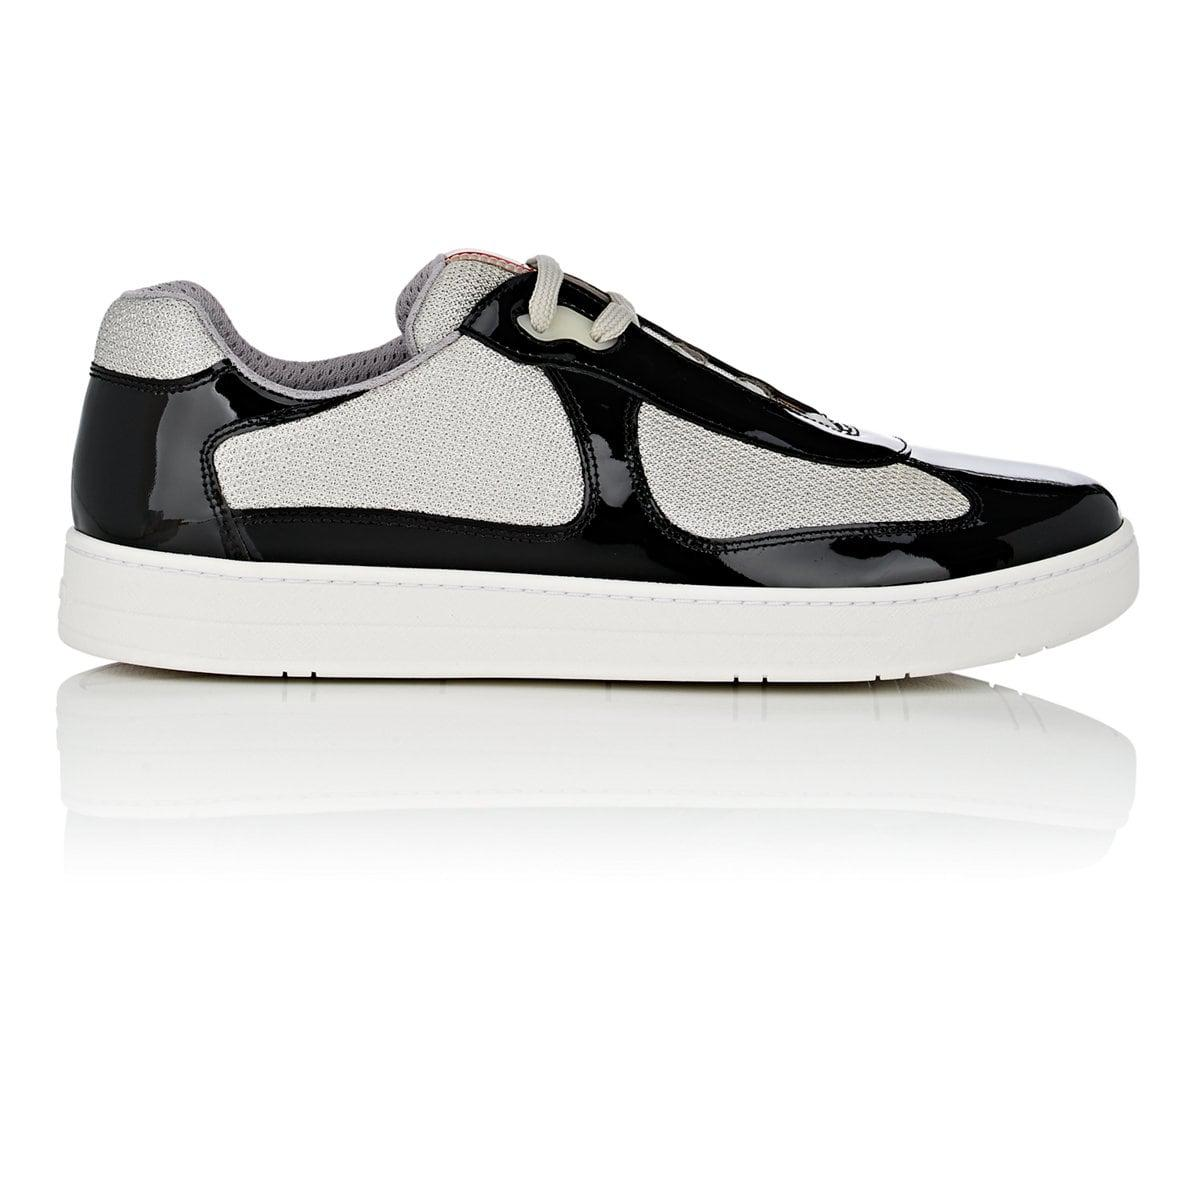 Sneakers R261 patent leather suede Contrast stitching Logo black silver Hogan